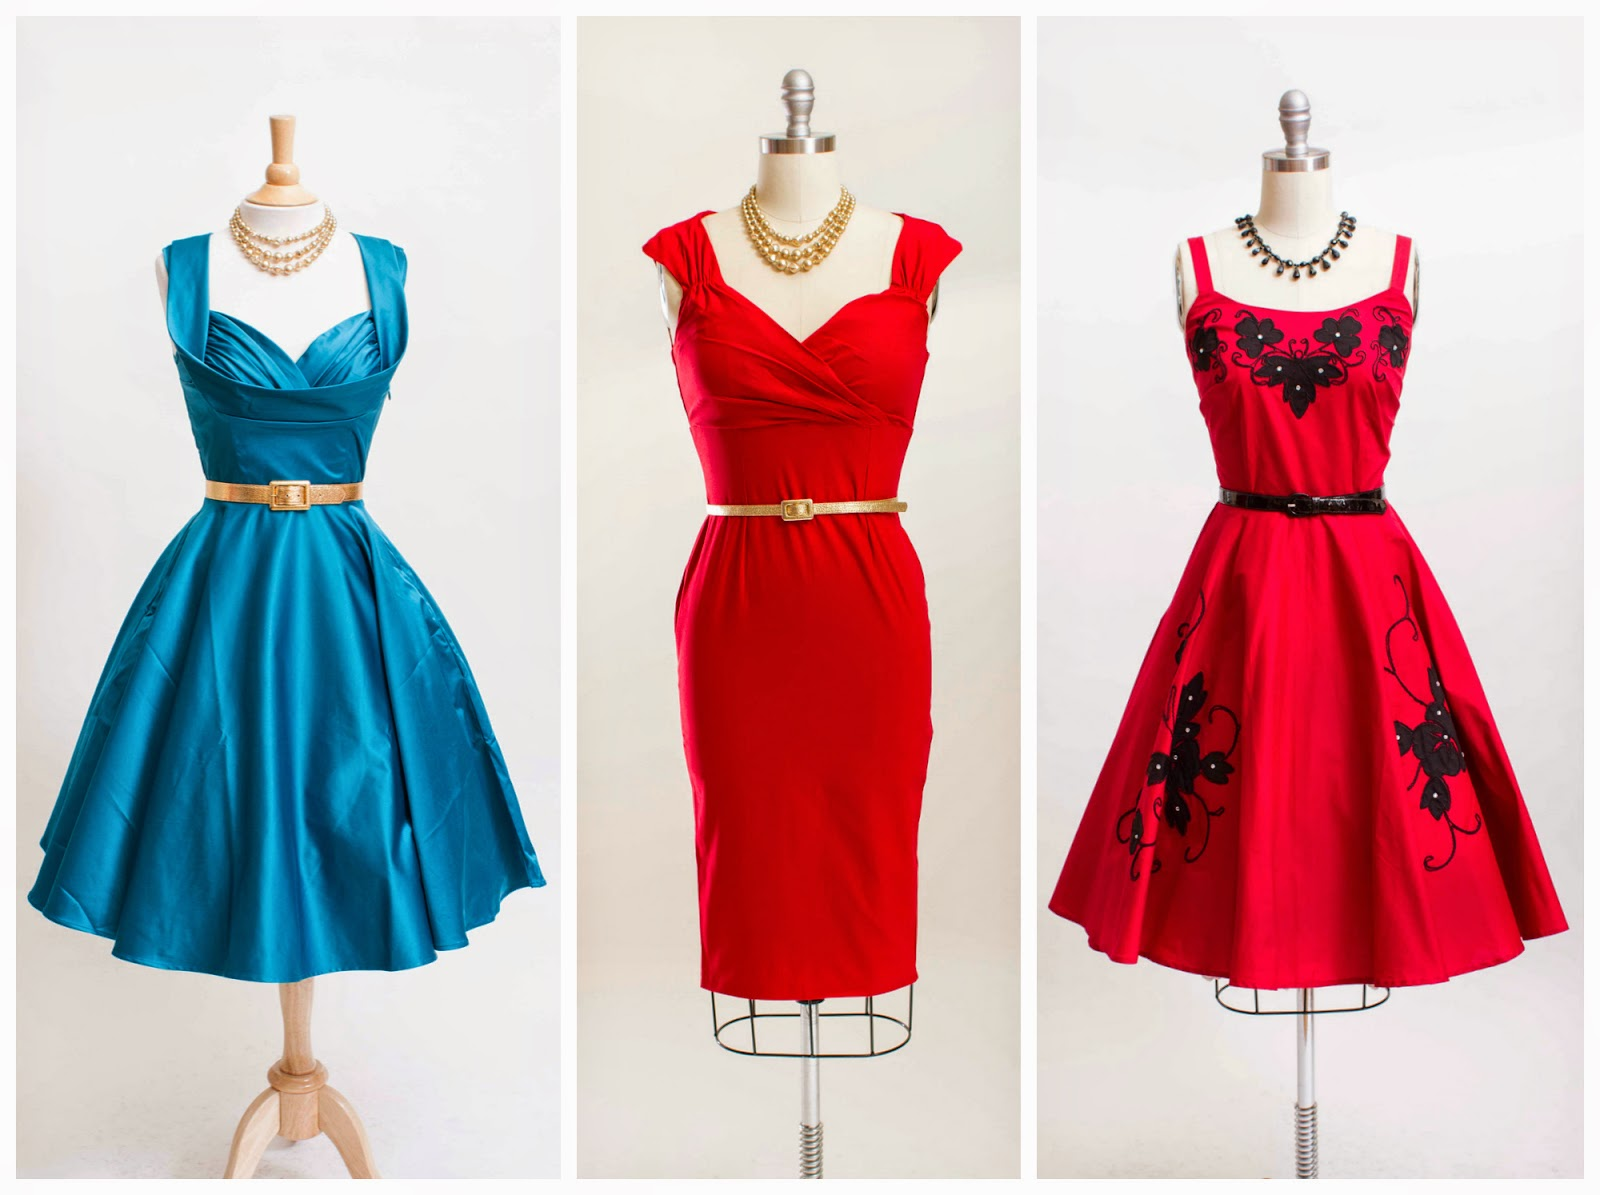 Simply Vintage Boutique: we carry vintage style dresses too...